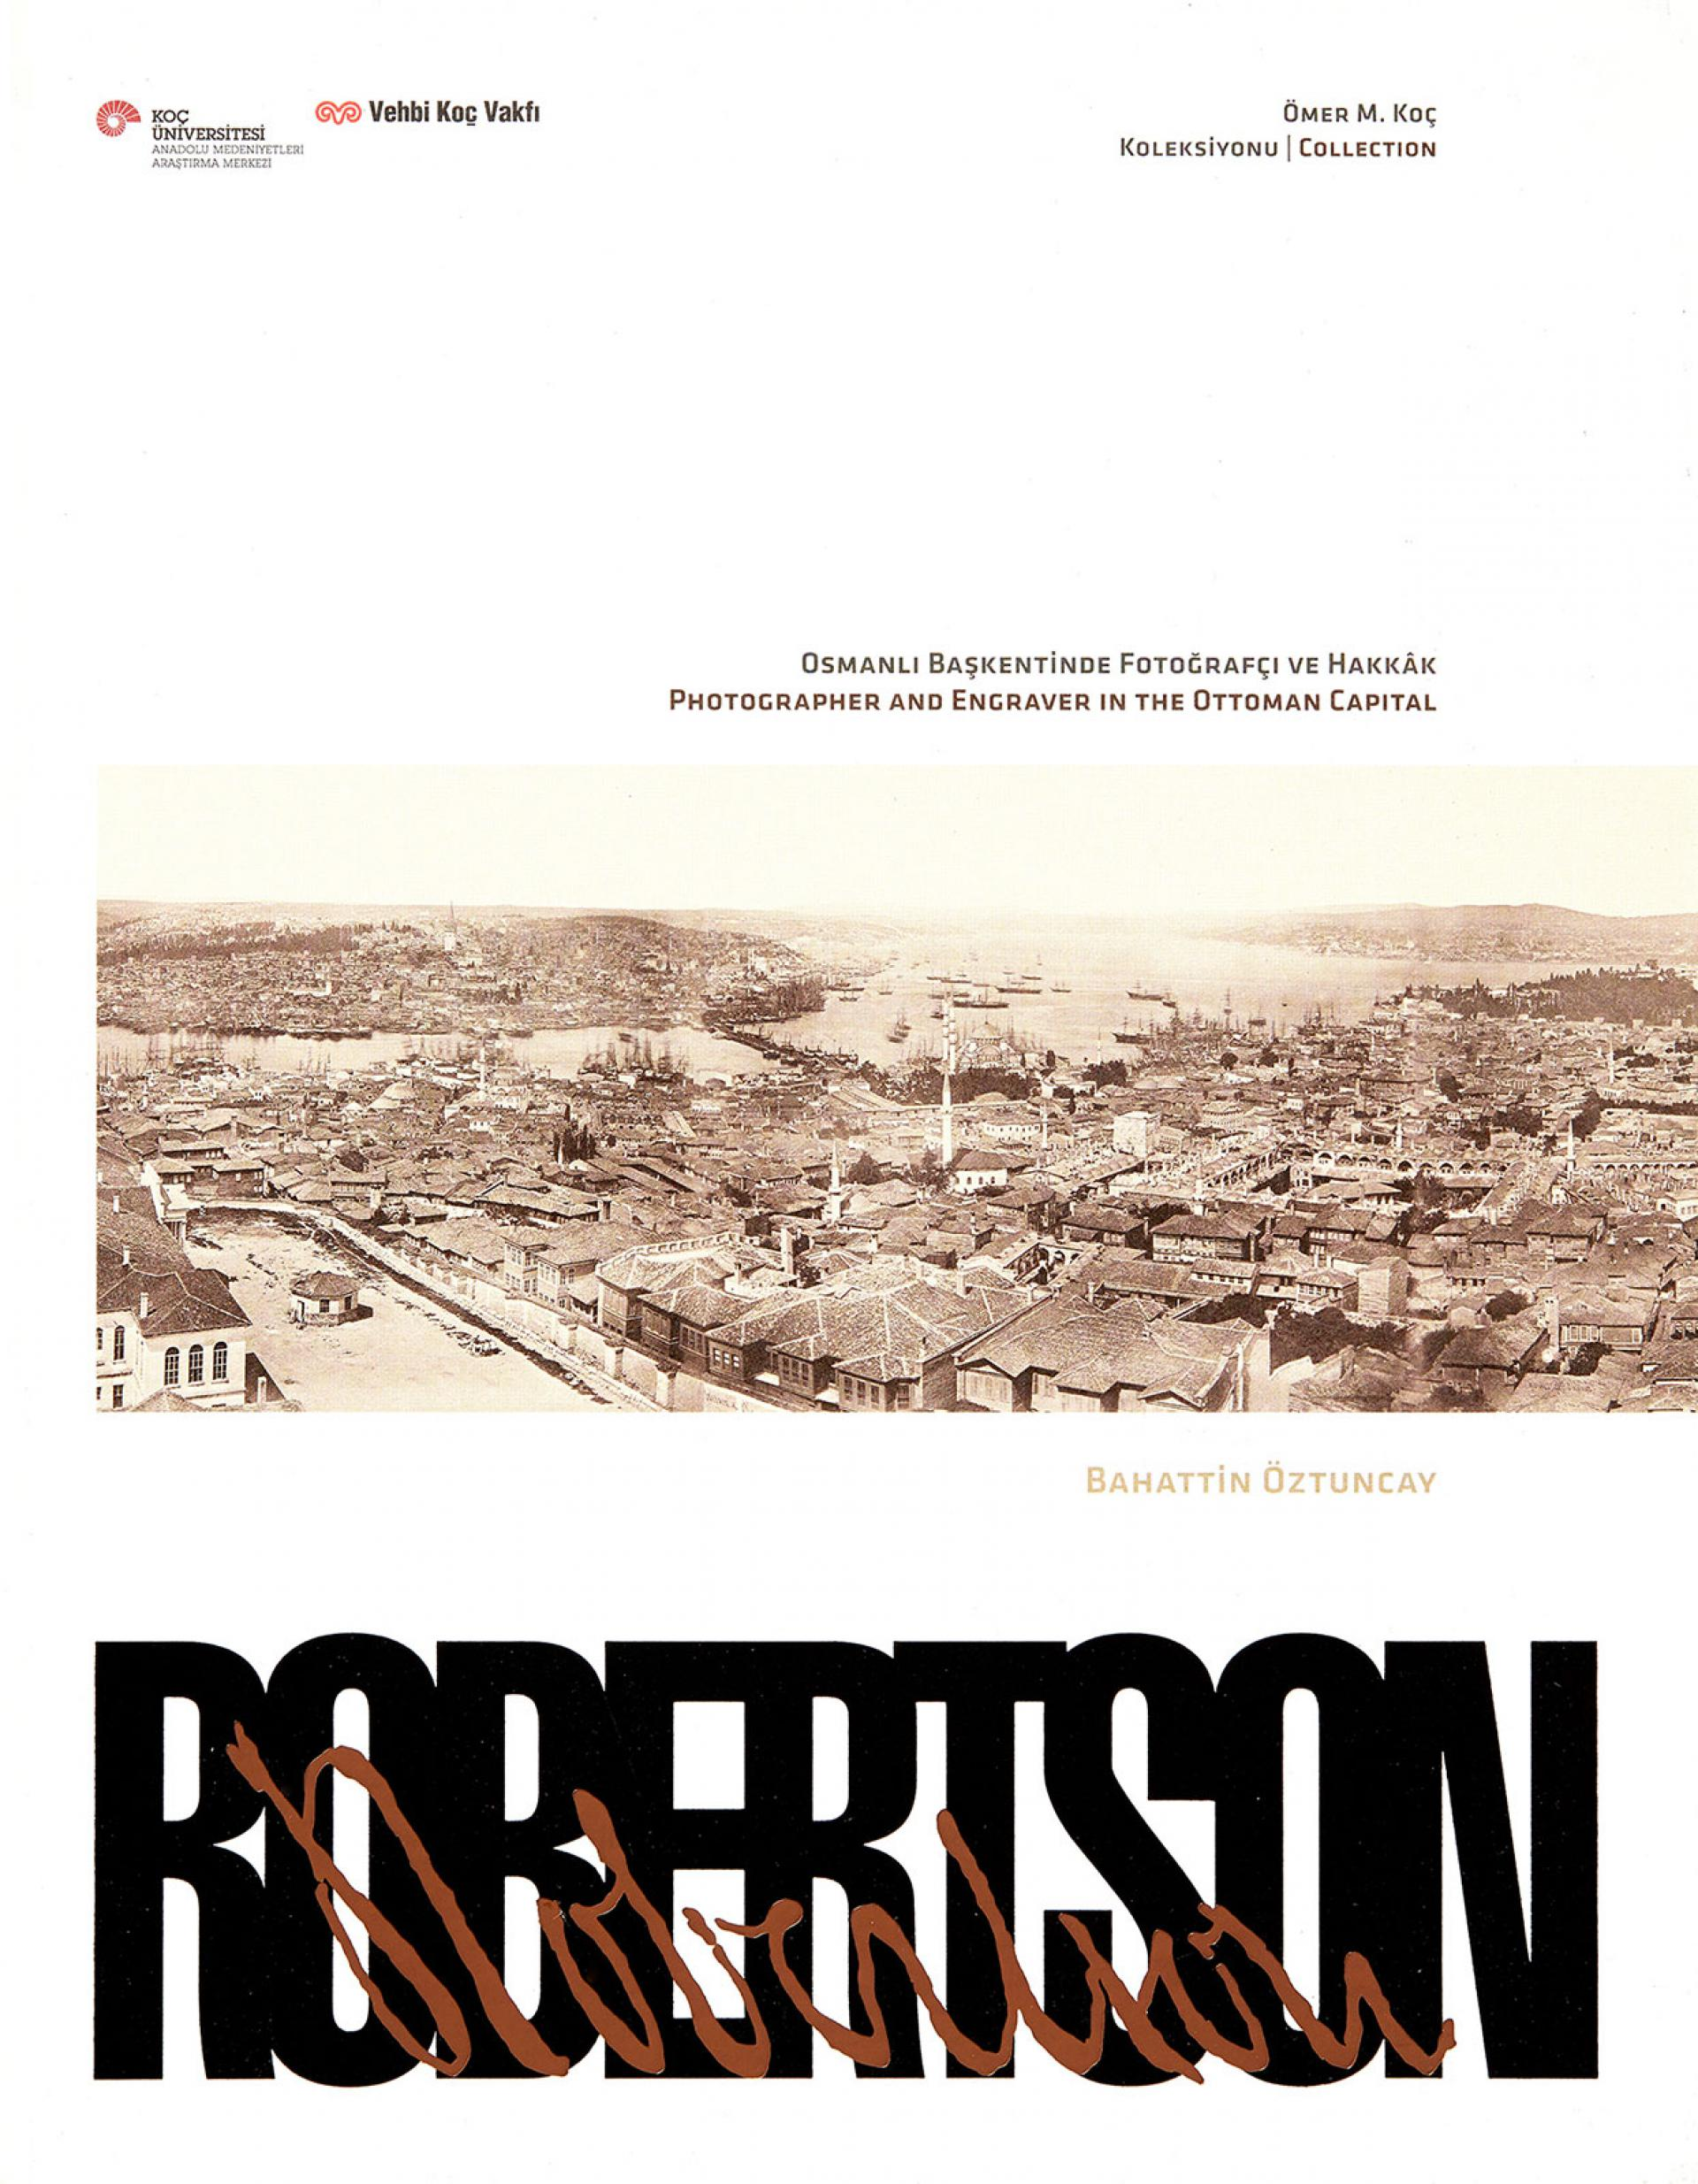 Robertson: Photographer Robertson, Photographer and Engraver in the Ottoman Capital - Ömer M. Koç Collection - BOOKS - Sadberk Hanım Museum